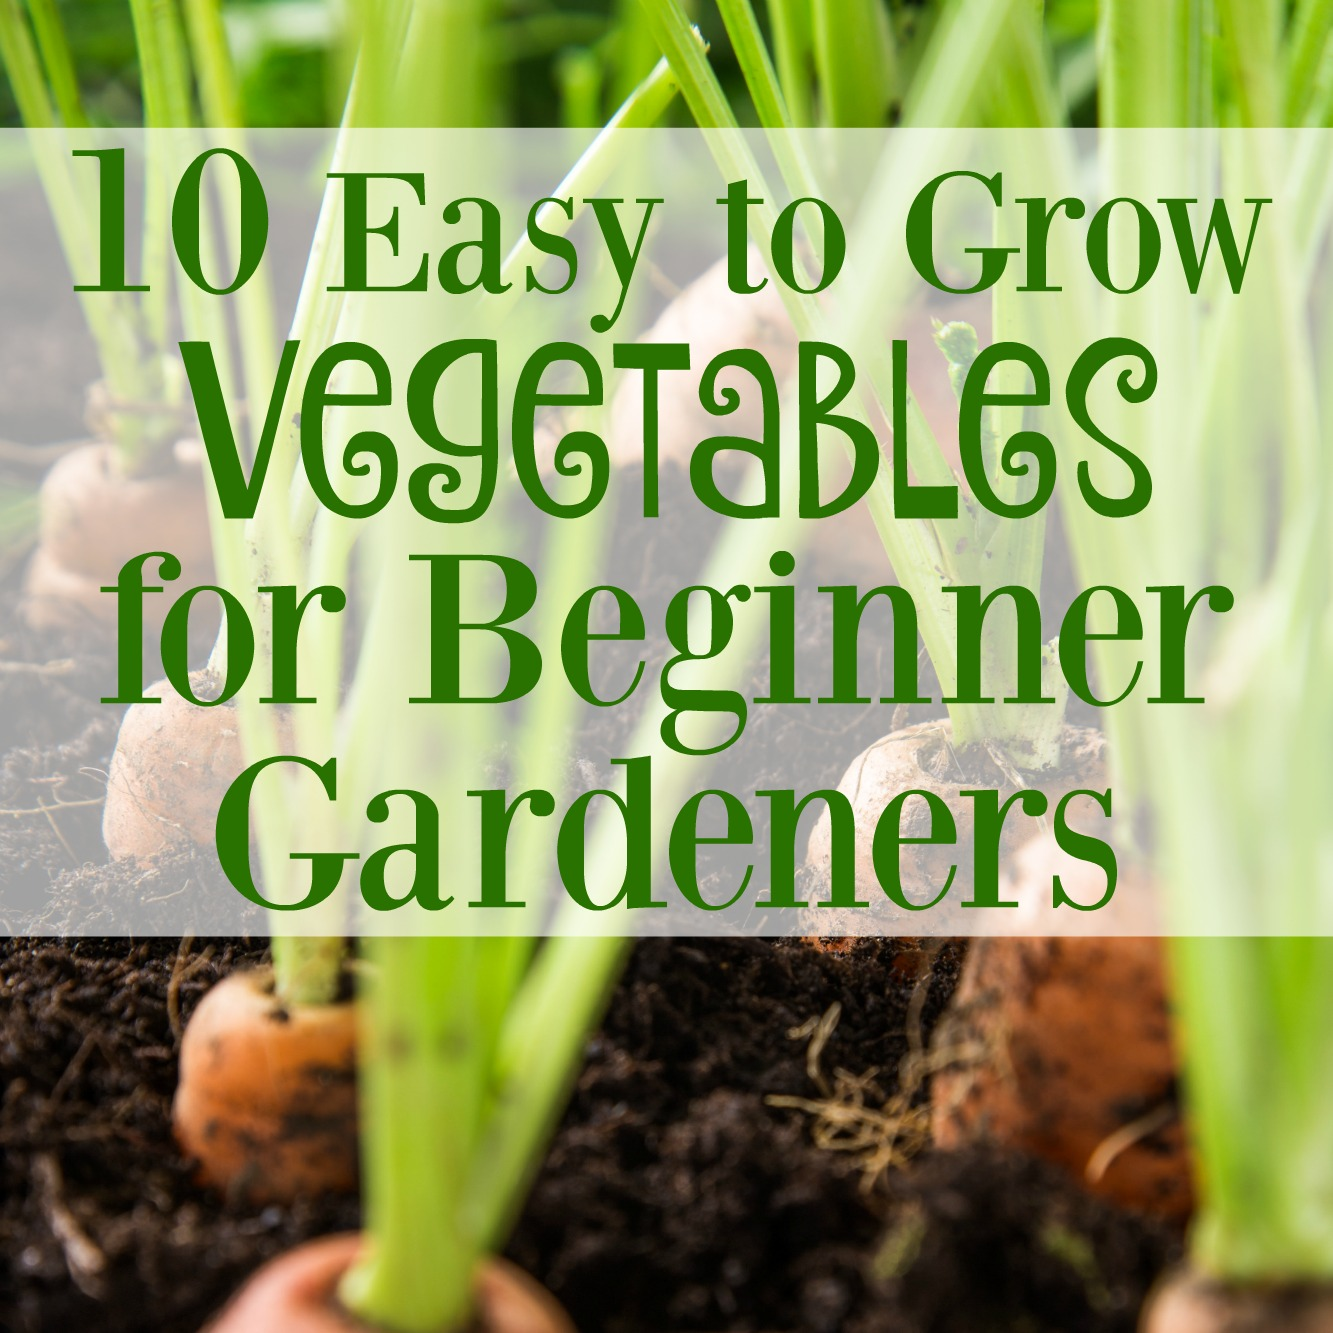 Creating Our First Vegetable Garden Advice Please: 10 Easy To Grow Vegetables For Beginner Gardeners